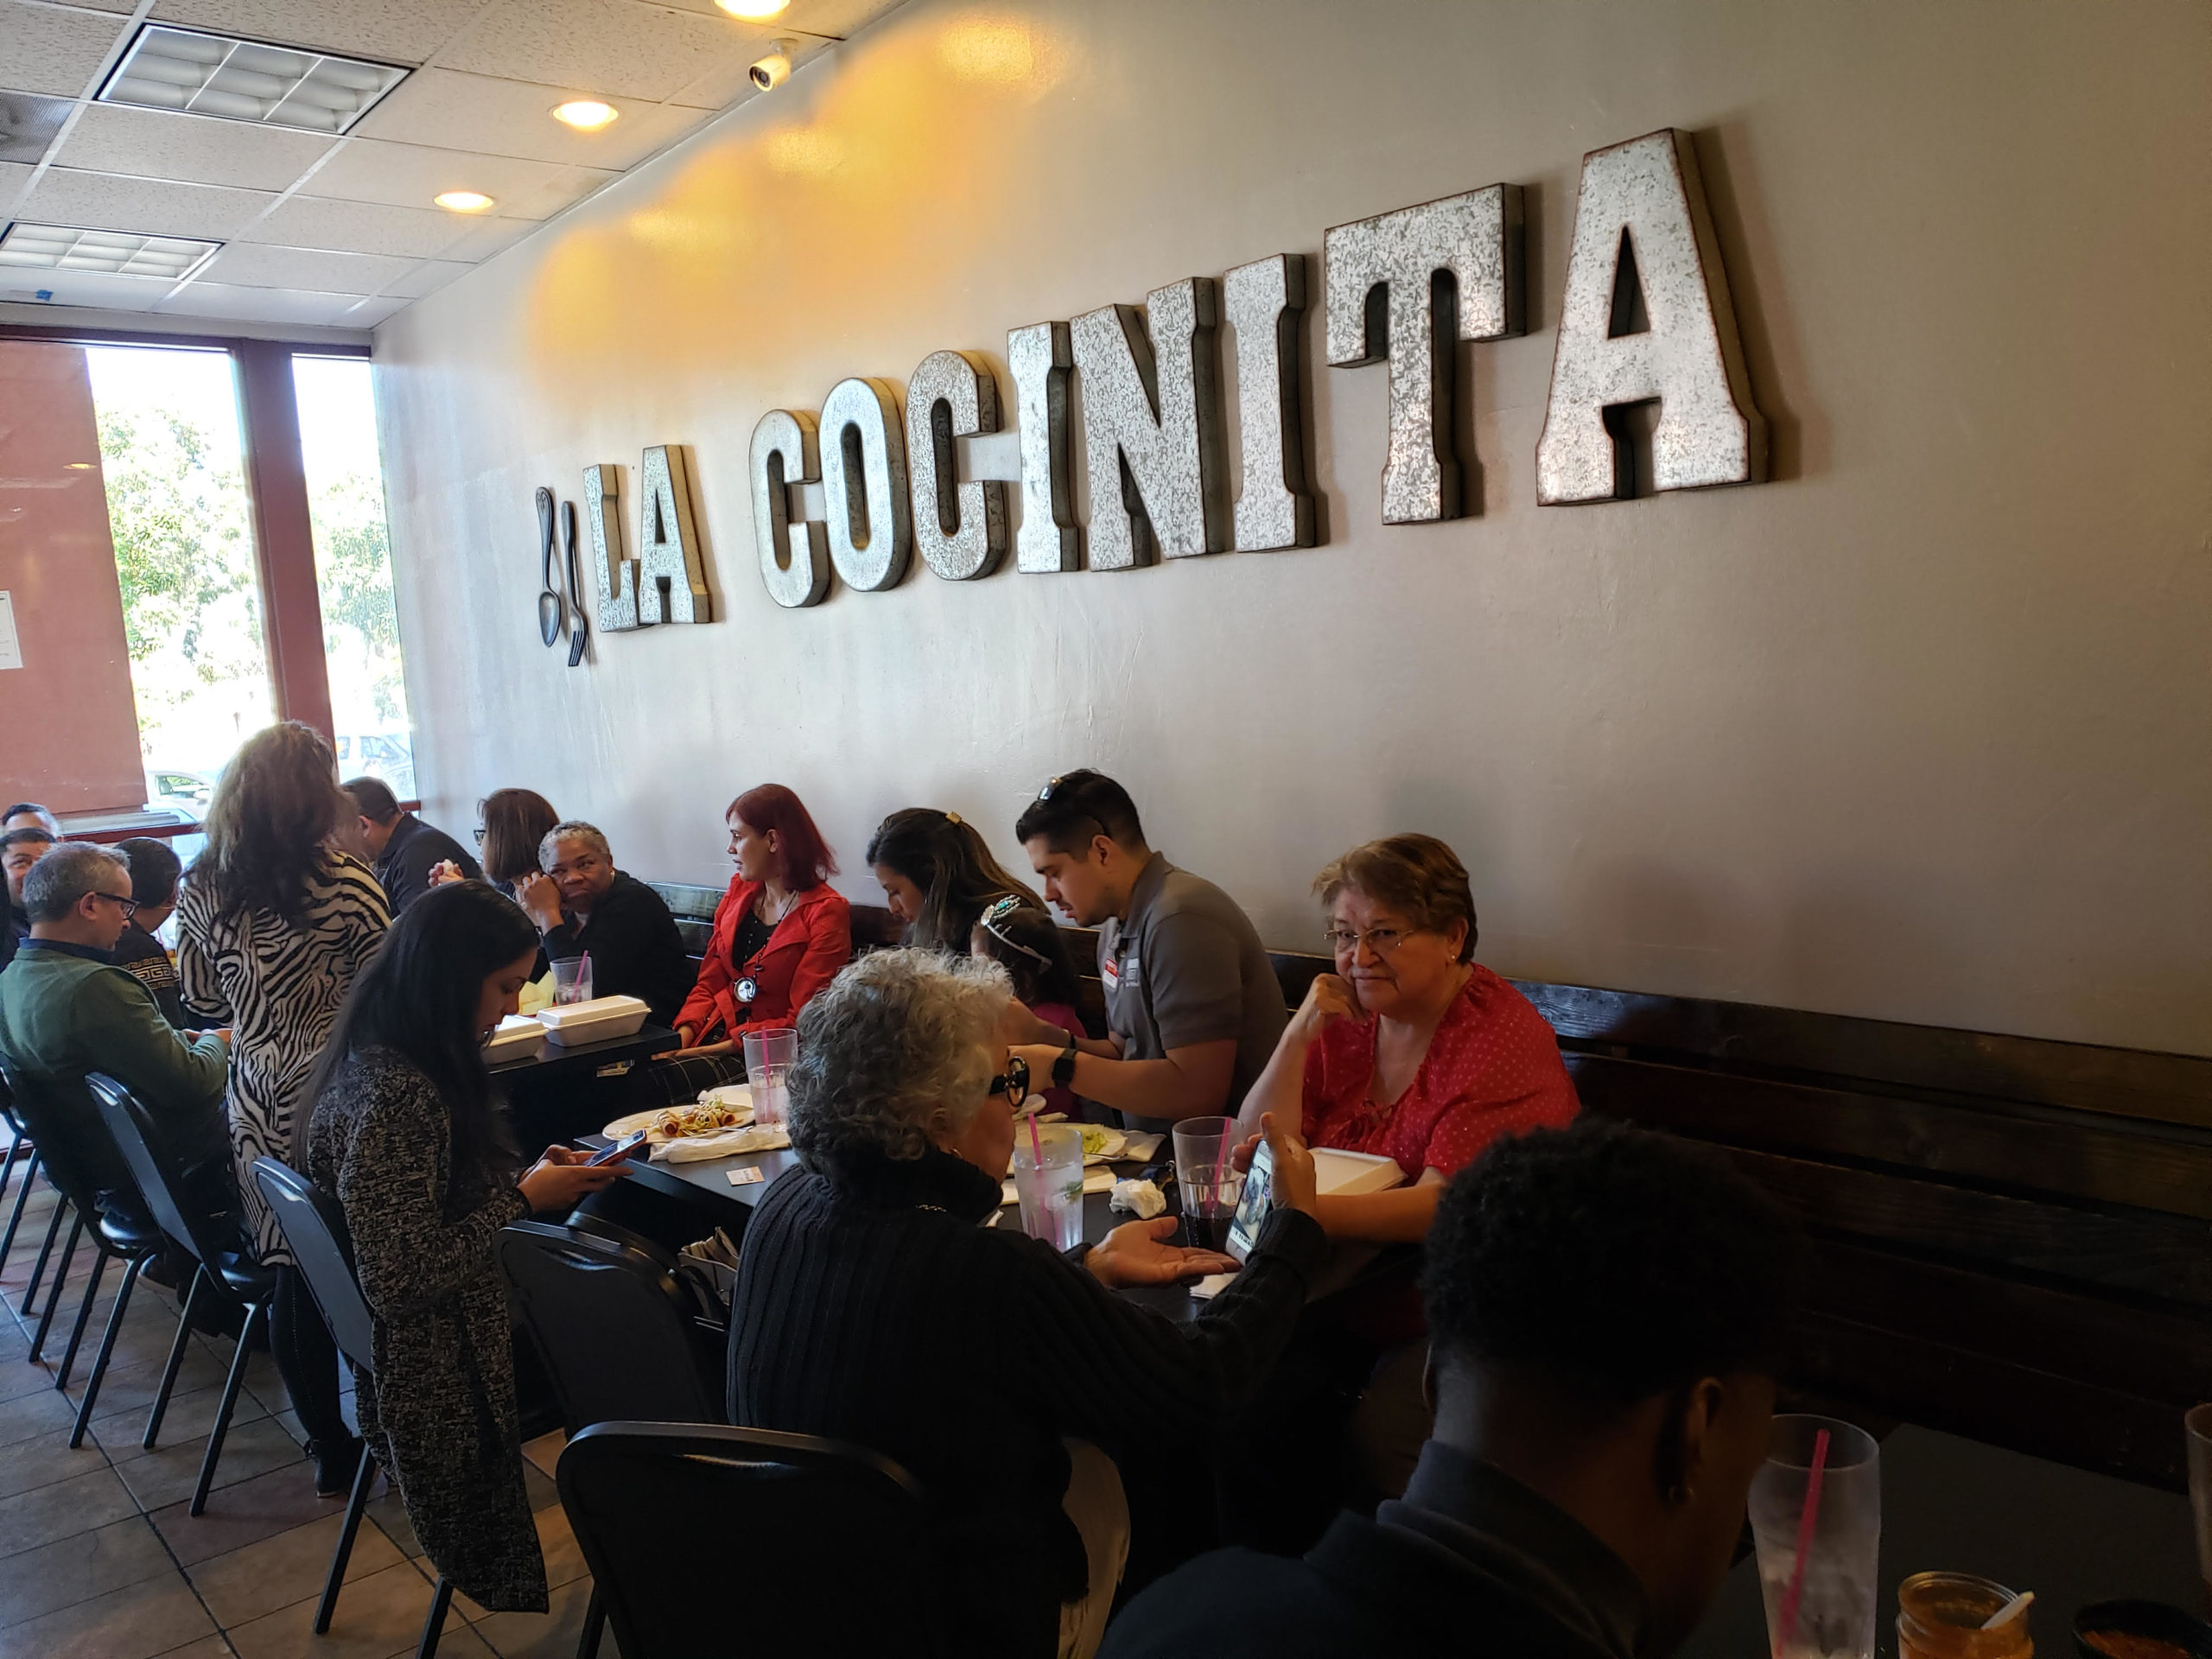 Members of the BPBA eating lunch at our event